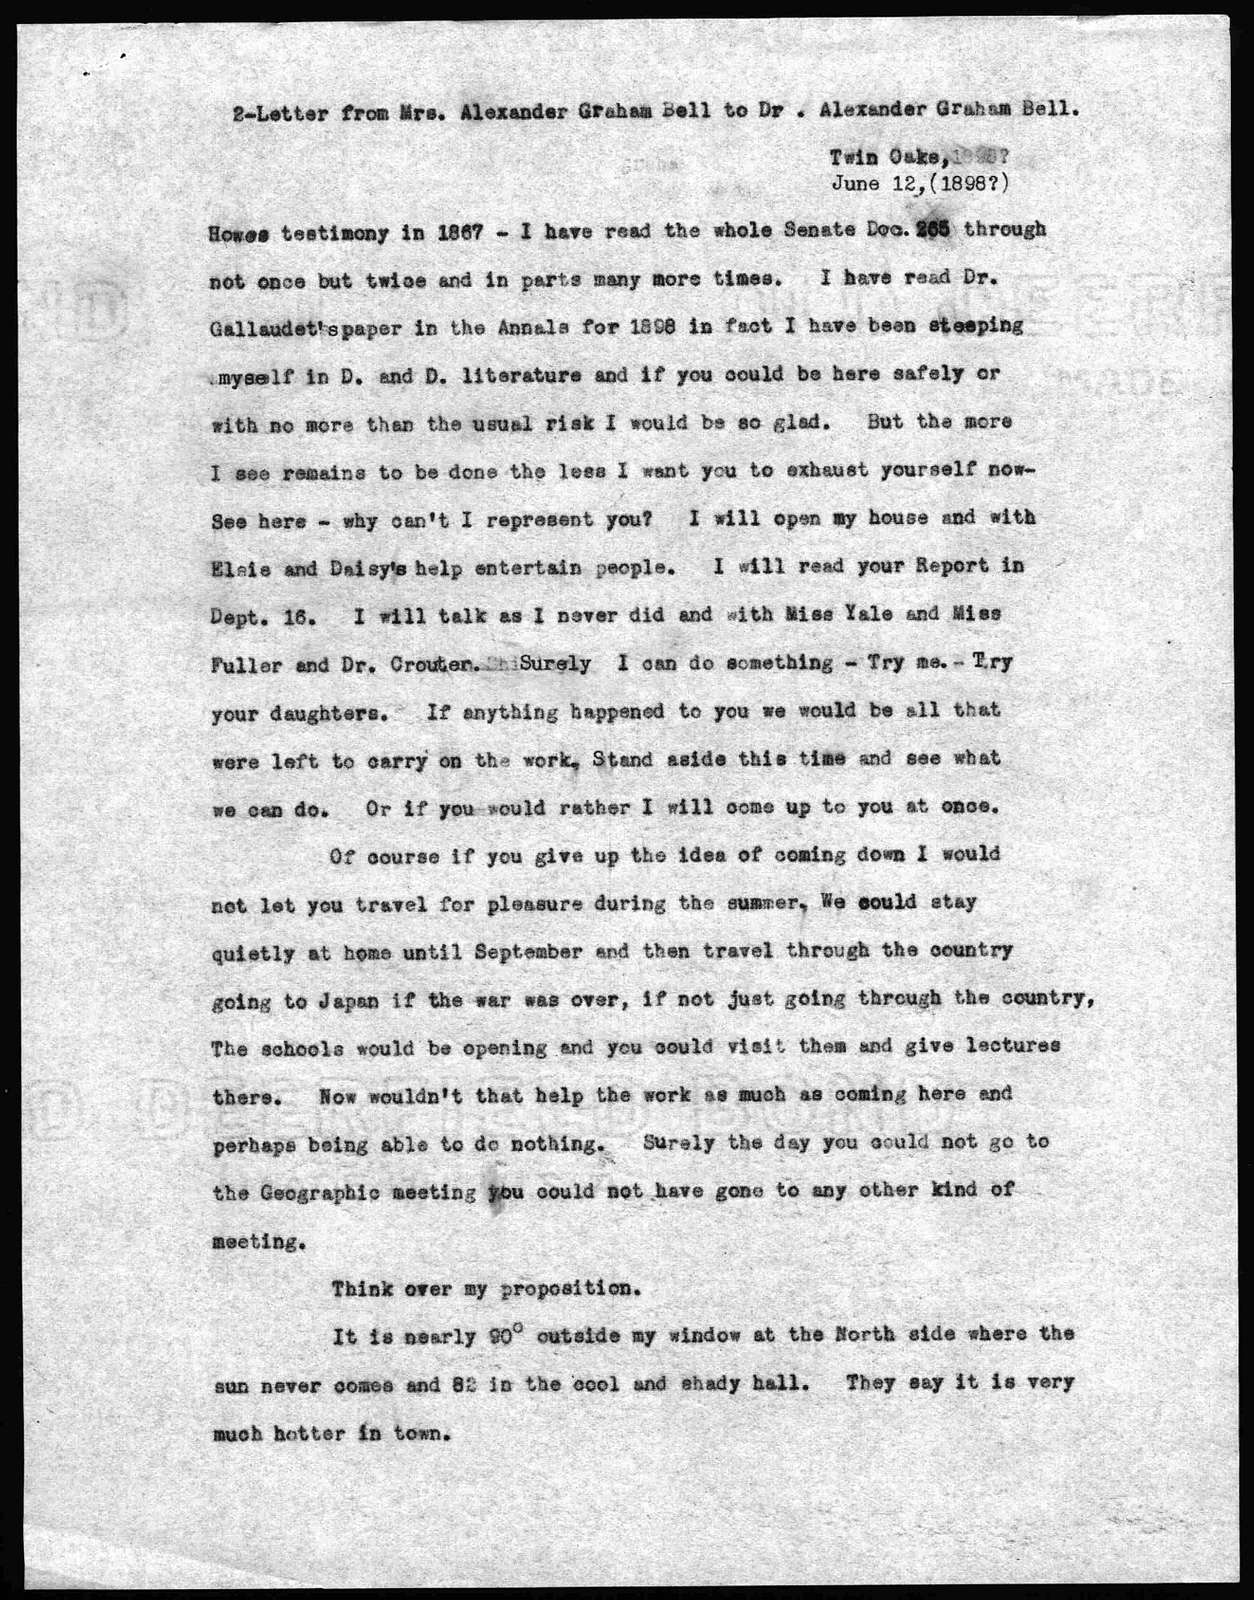 Letter from Mabel Hubbard Bell to Alexander Graham Bell, June 12